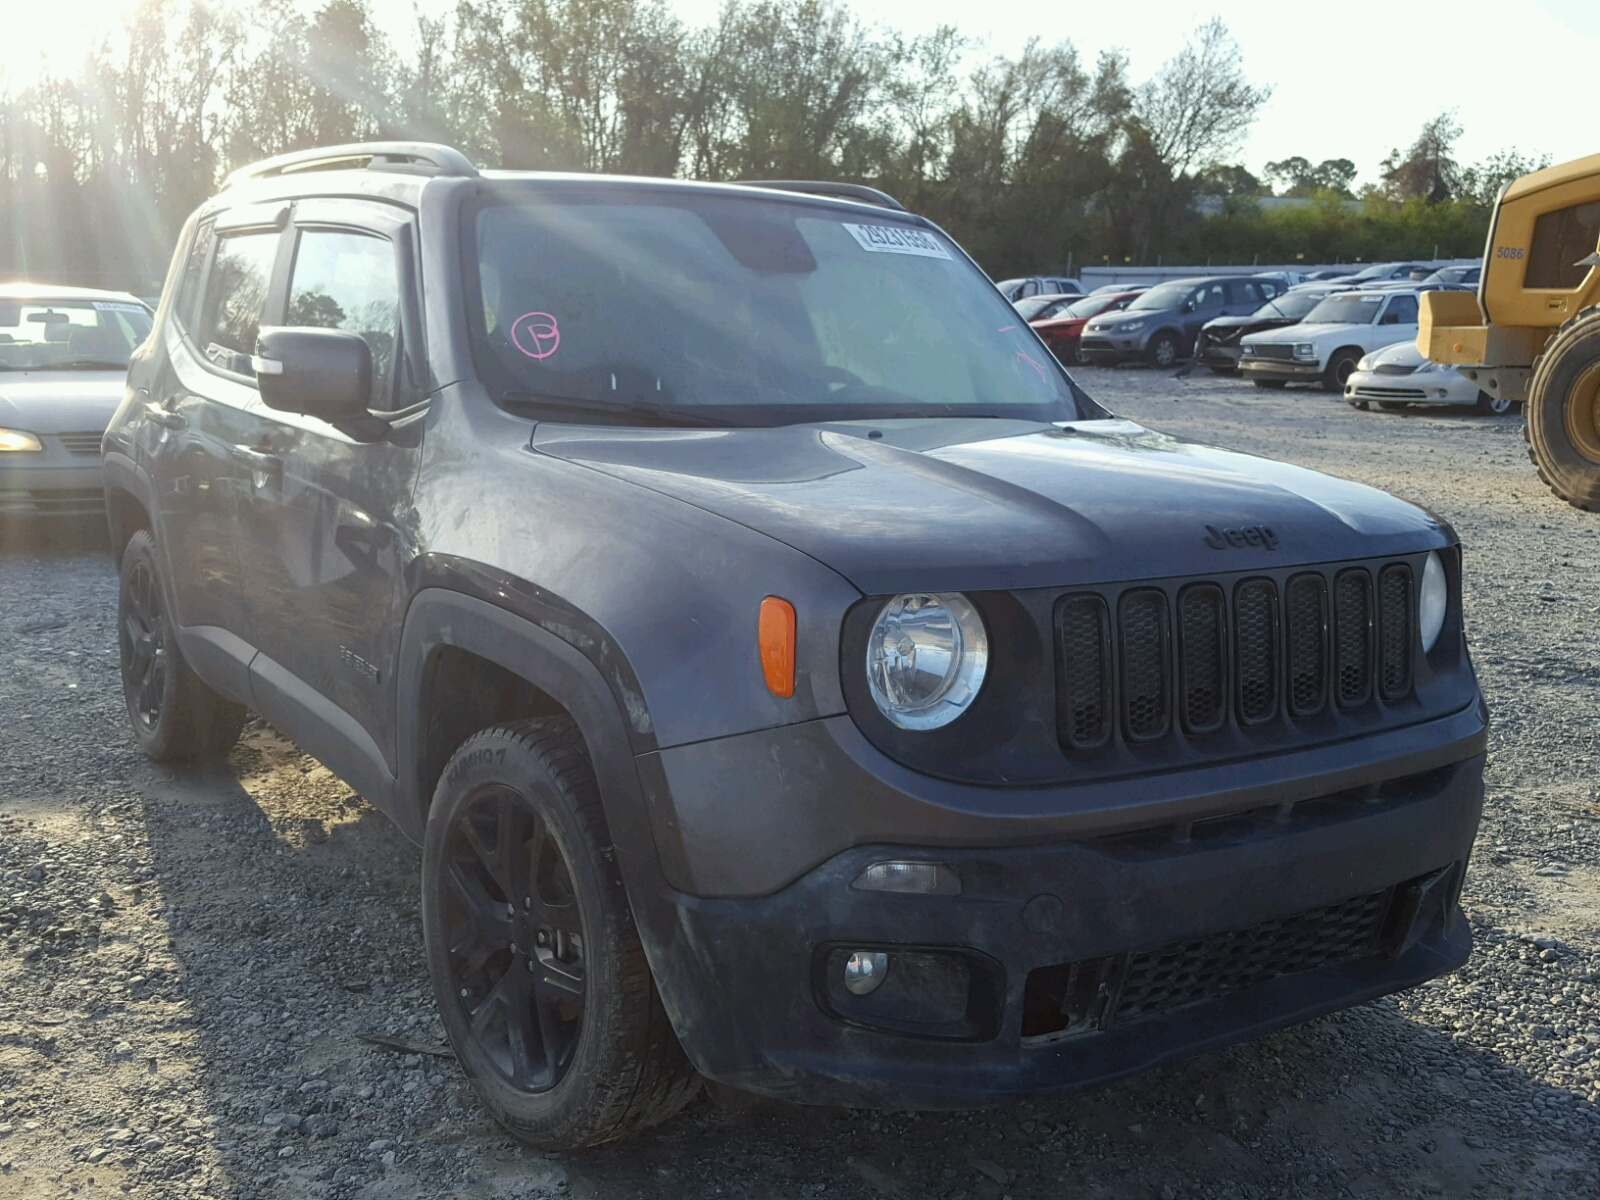 Car Lots In Memphis Tn >> Auto Auction Ended on VIN: ZACCJAAT6GPE19497 2016 JEEP RENEGADE S in TN - MEMPHIS